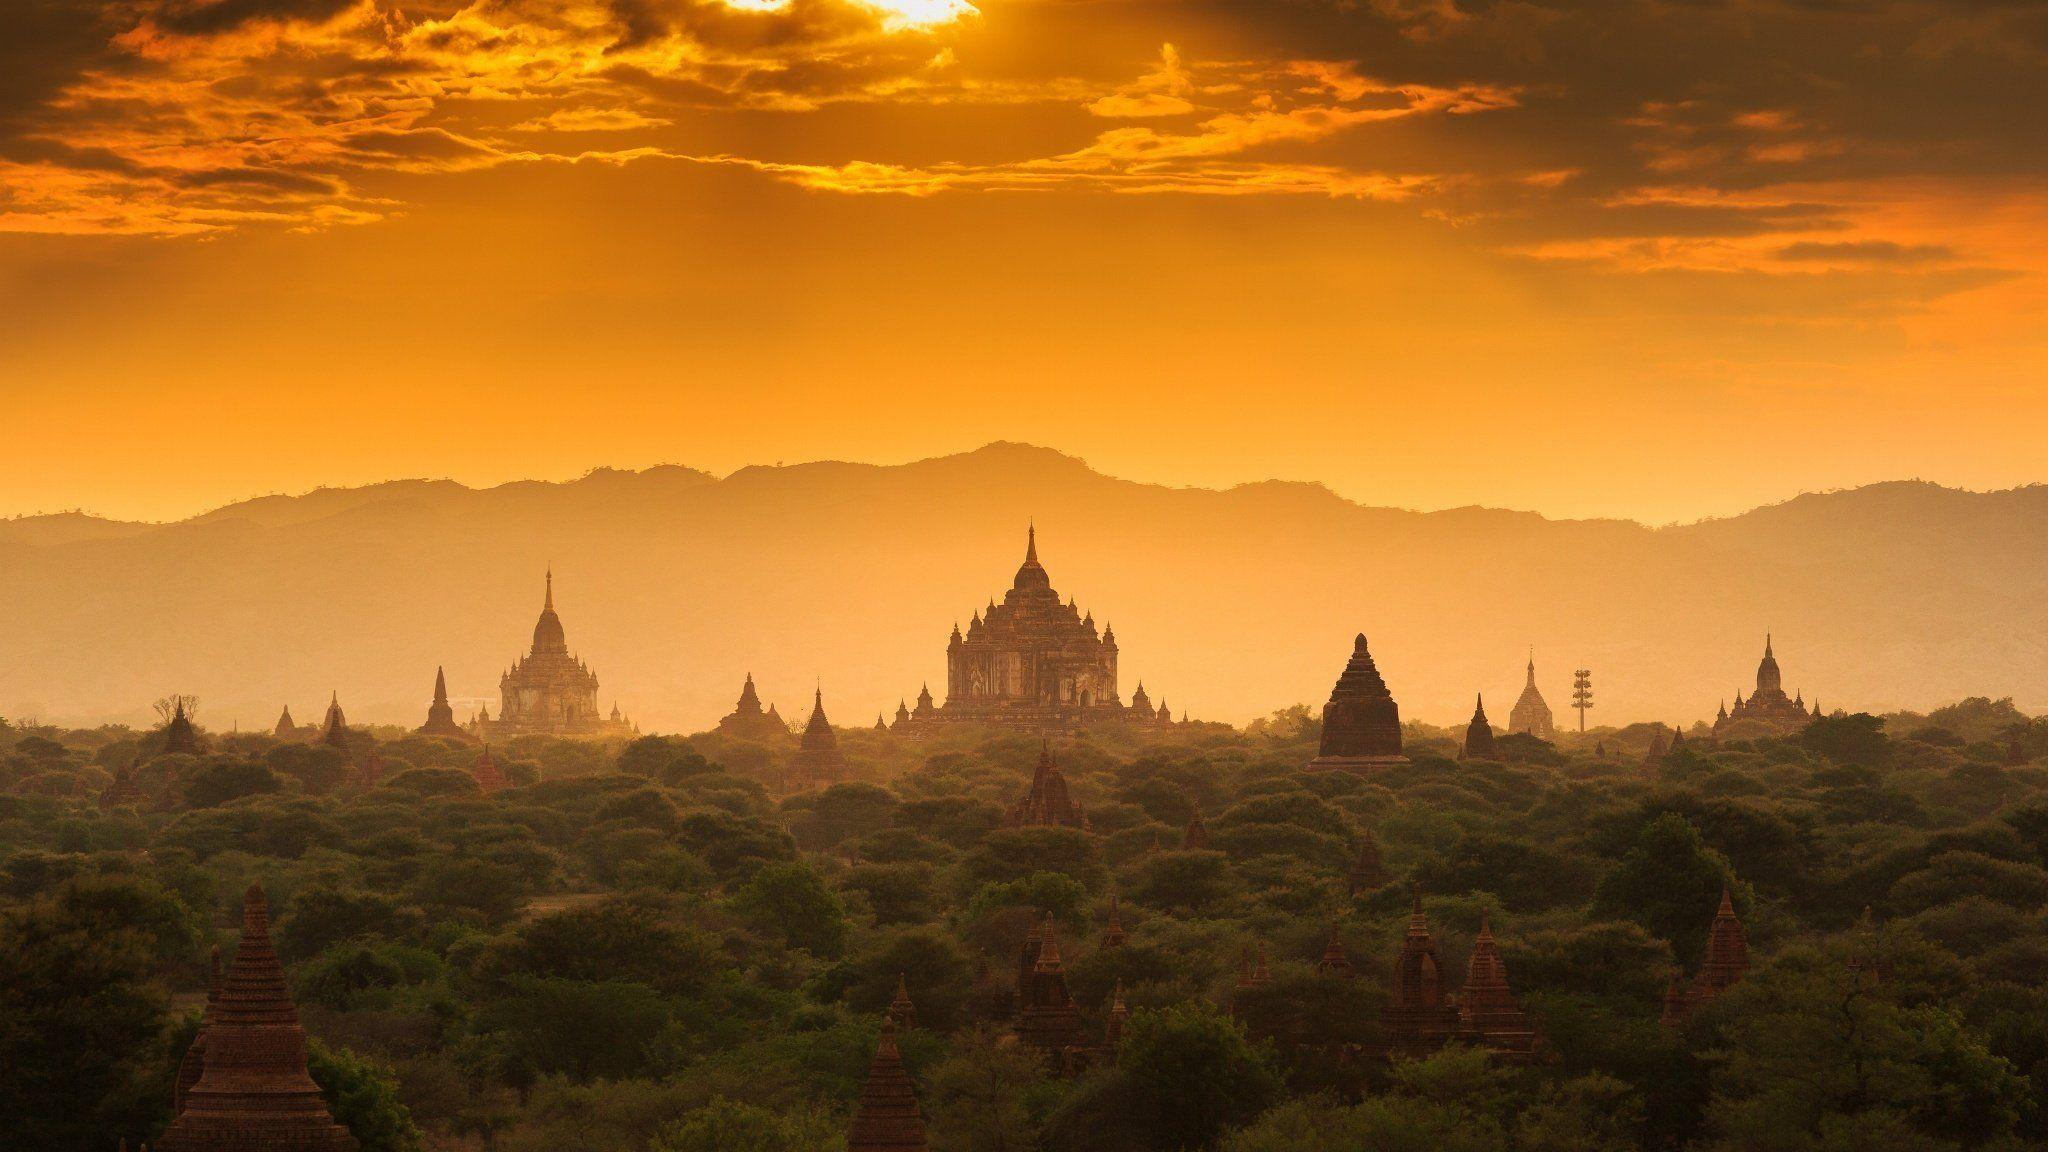 myanmar burma the lost town old architecture sunset forest temple